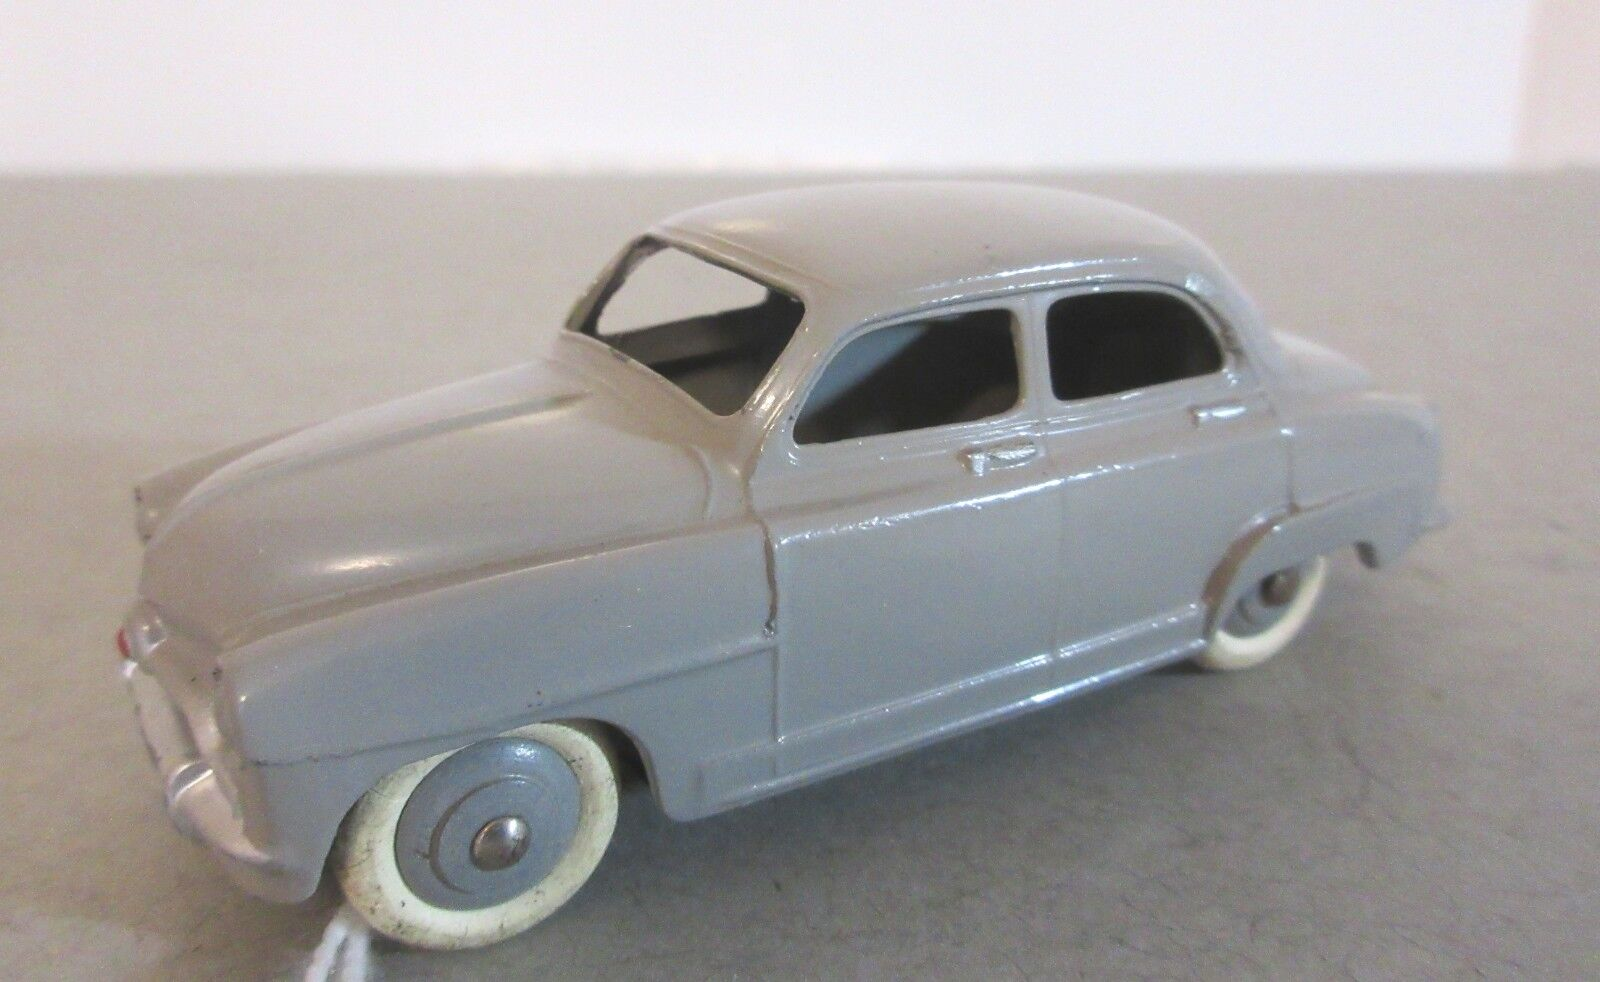 French Dinky Toys Simca Aronde Elysee Saloon Car 1950's French Four Door Saloon